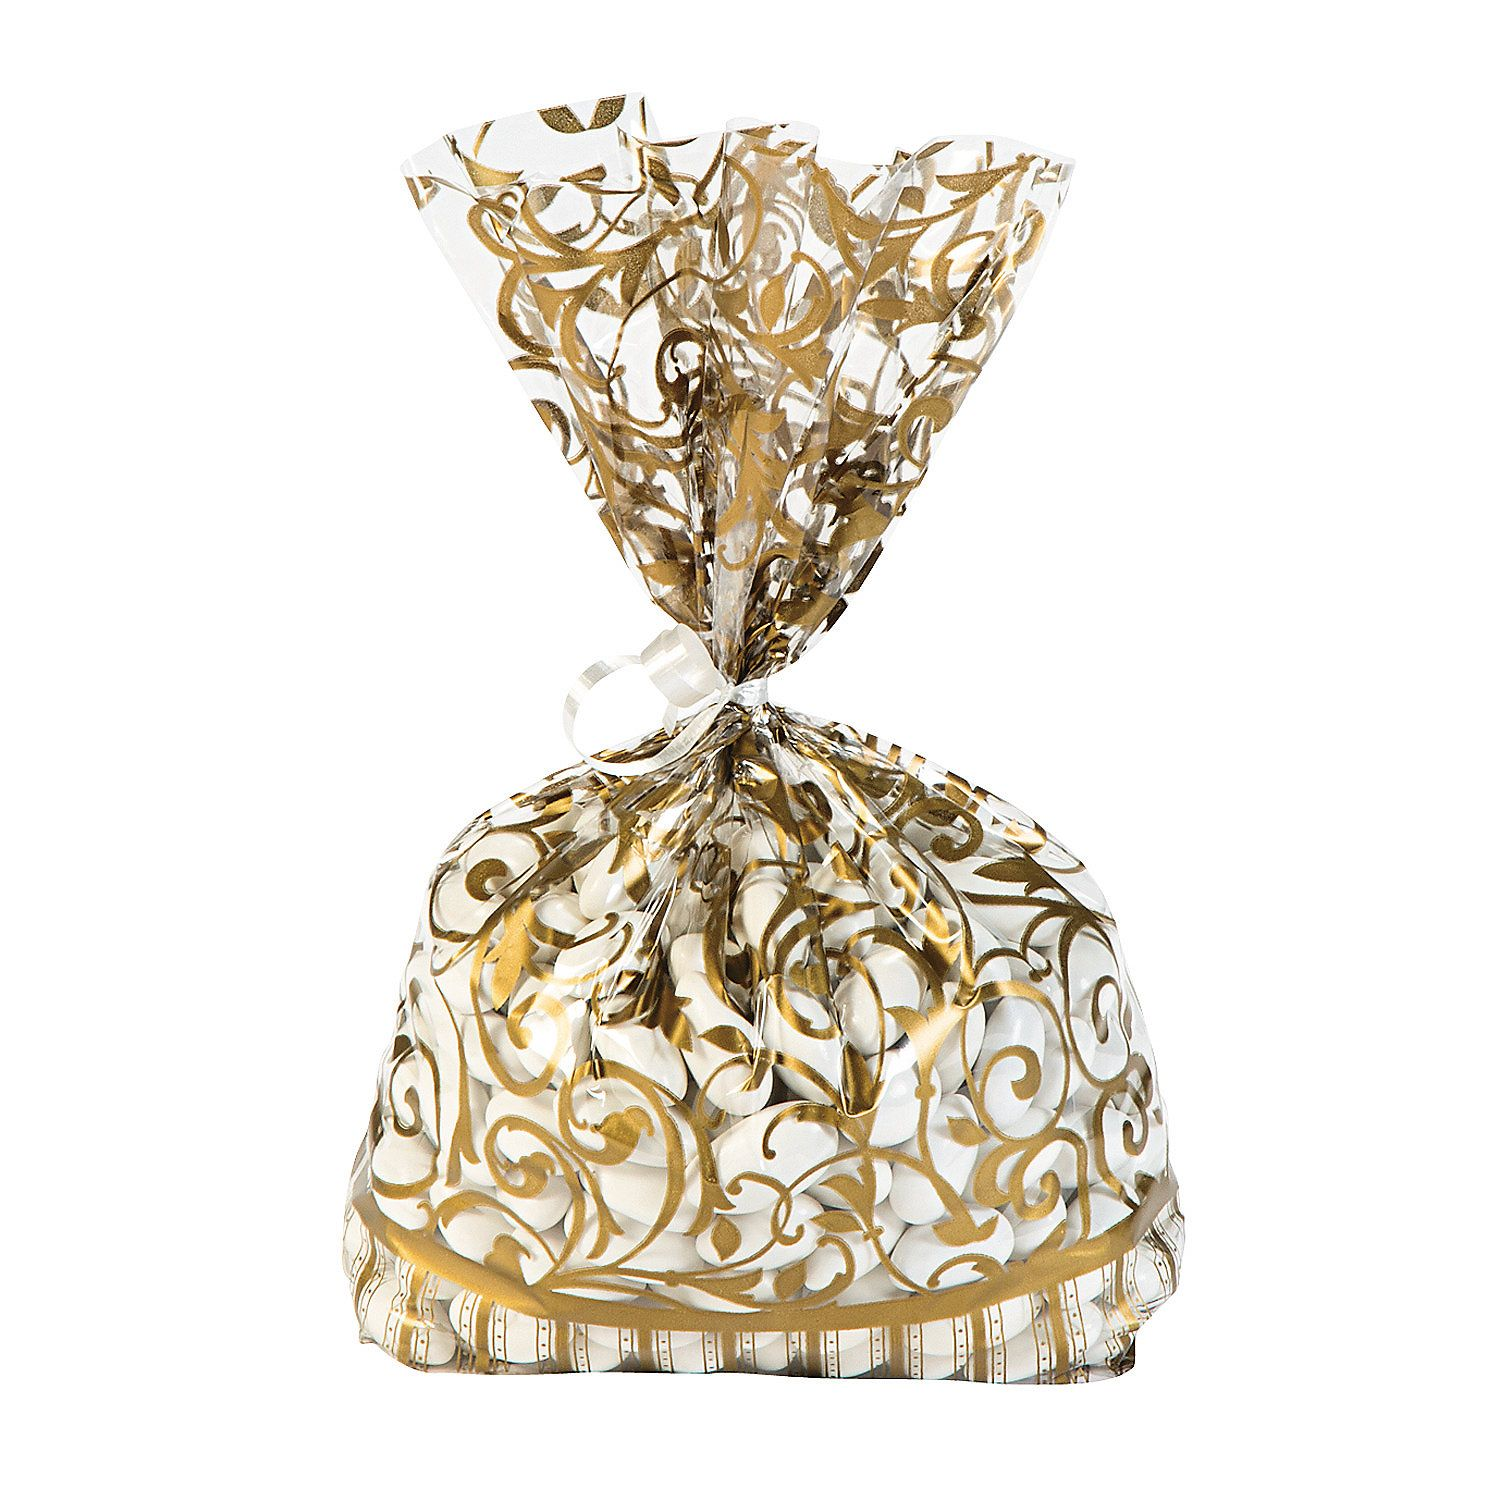 Gold Swirl Cellophane Bags | Favors, Wedding candy bars and Greek ...